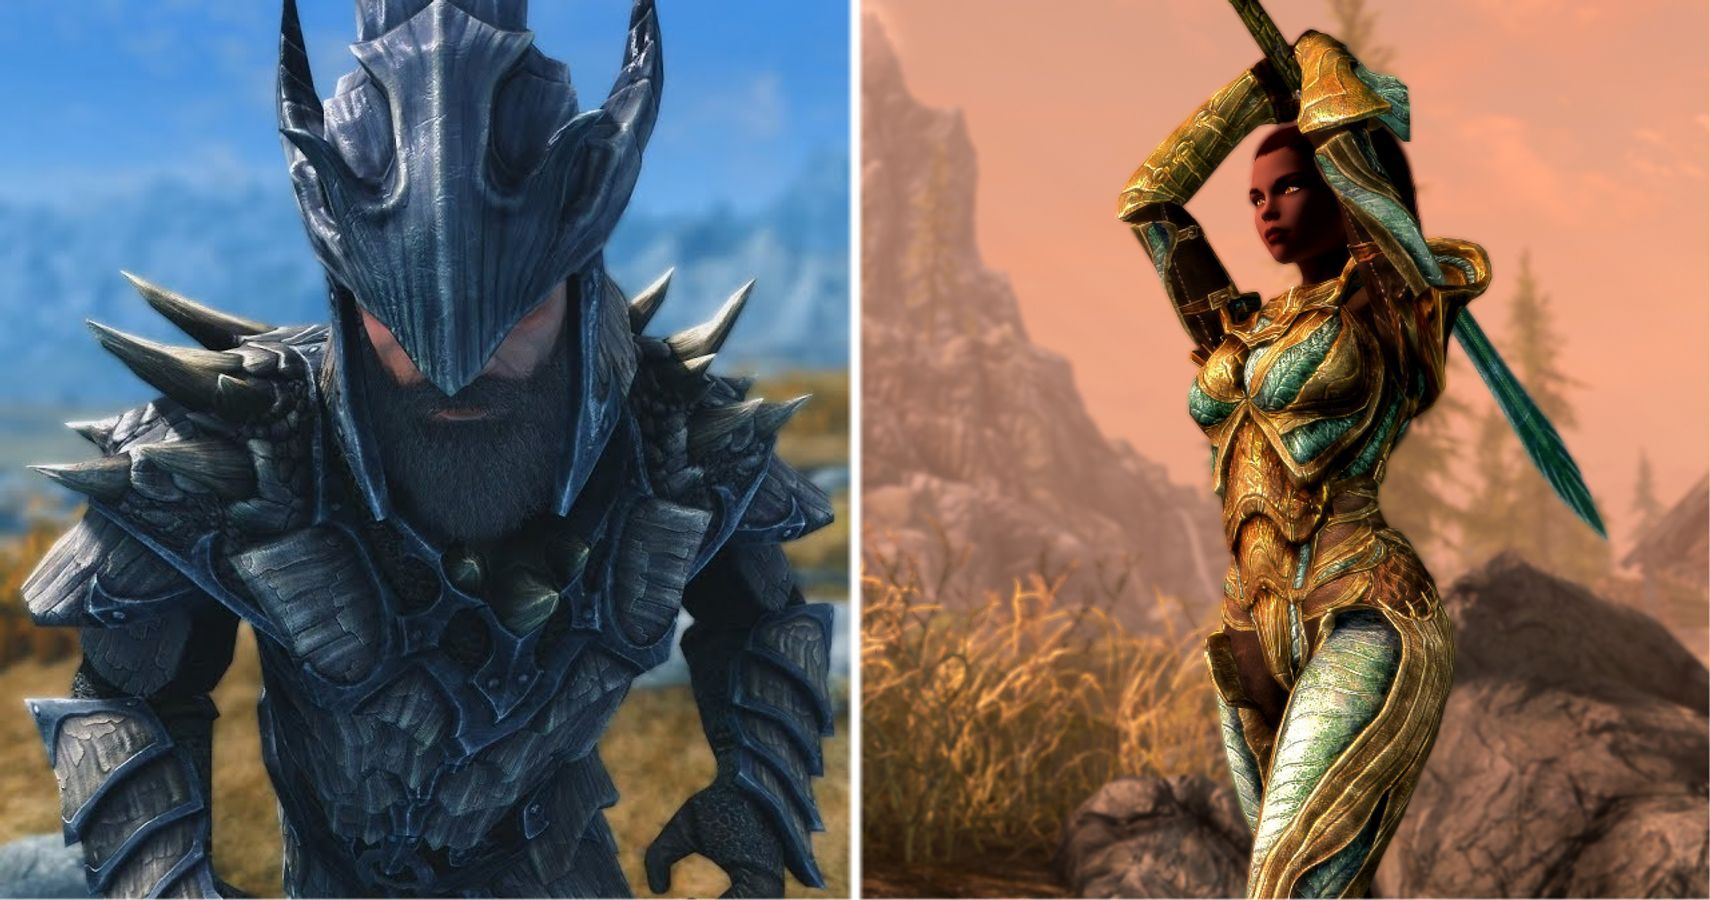 Skyrim The 15 Best Light Armor Sets Ranked Game Rant Here is the ultimate dragon ball legends tier list to give you an overview. the 15 best light armor sets ranked